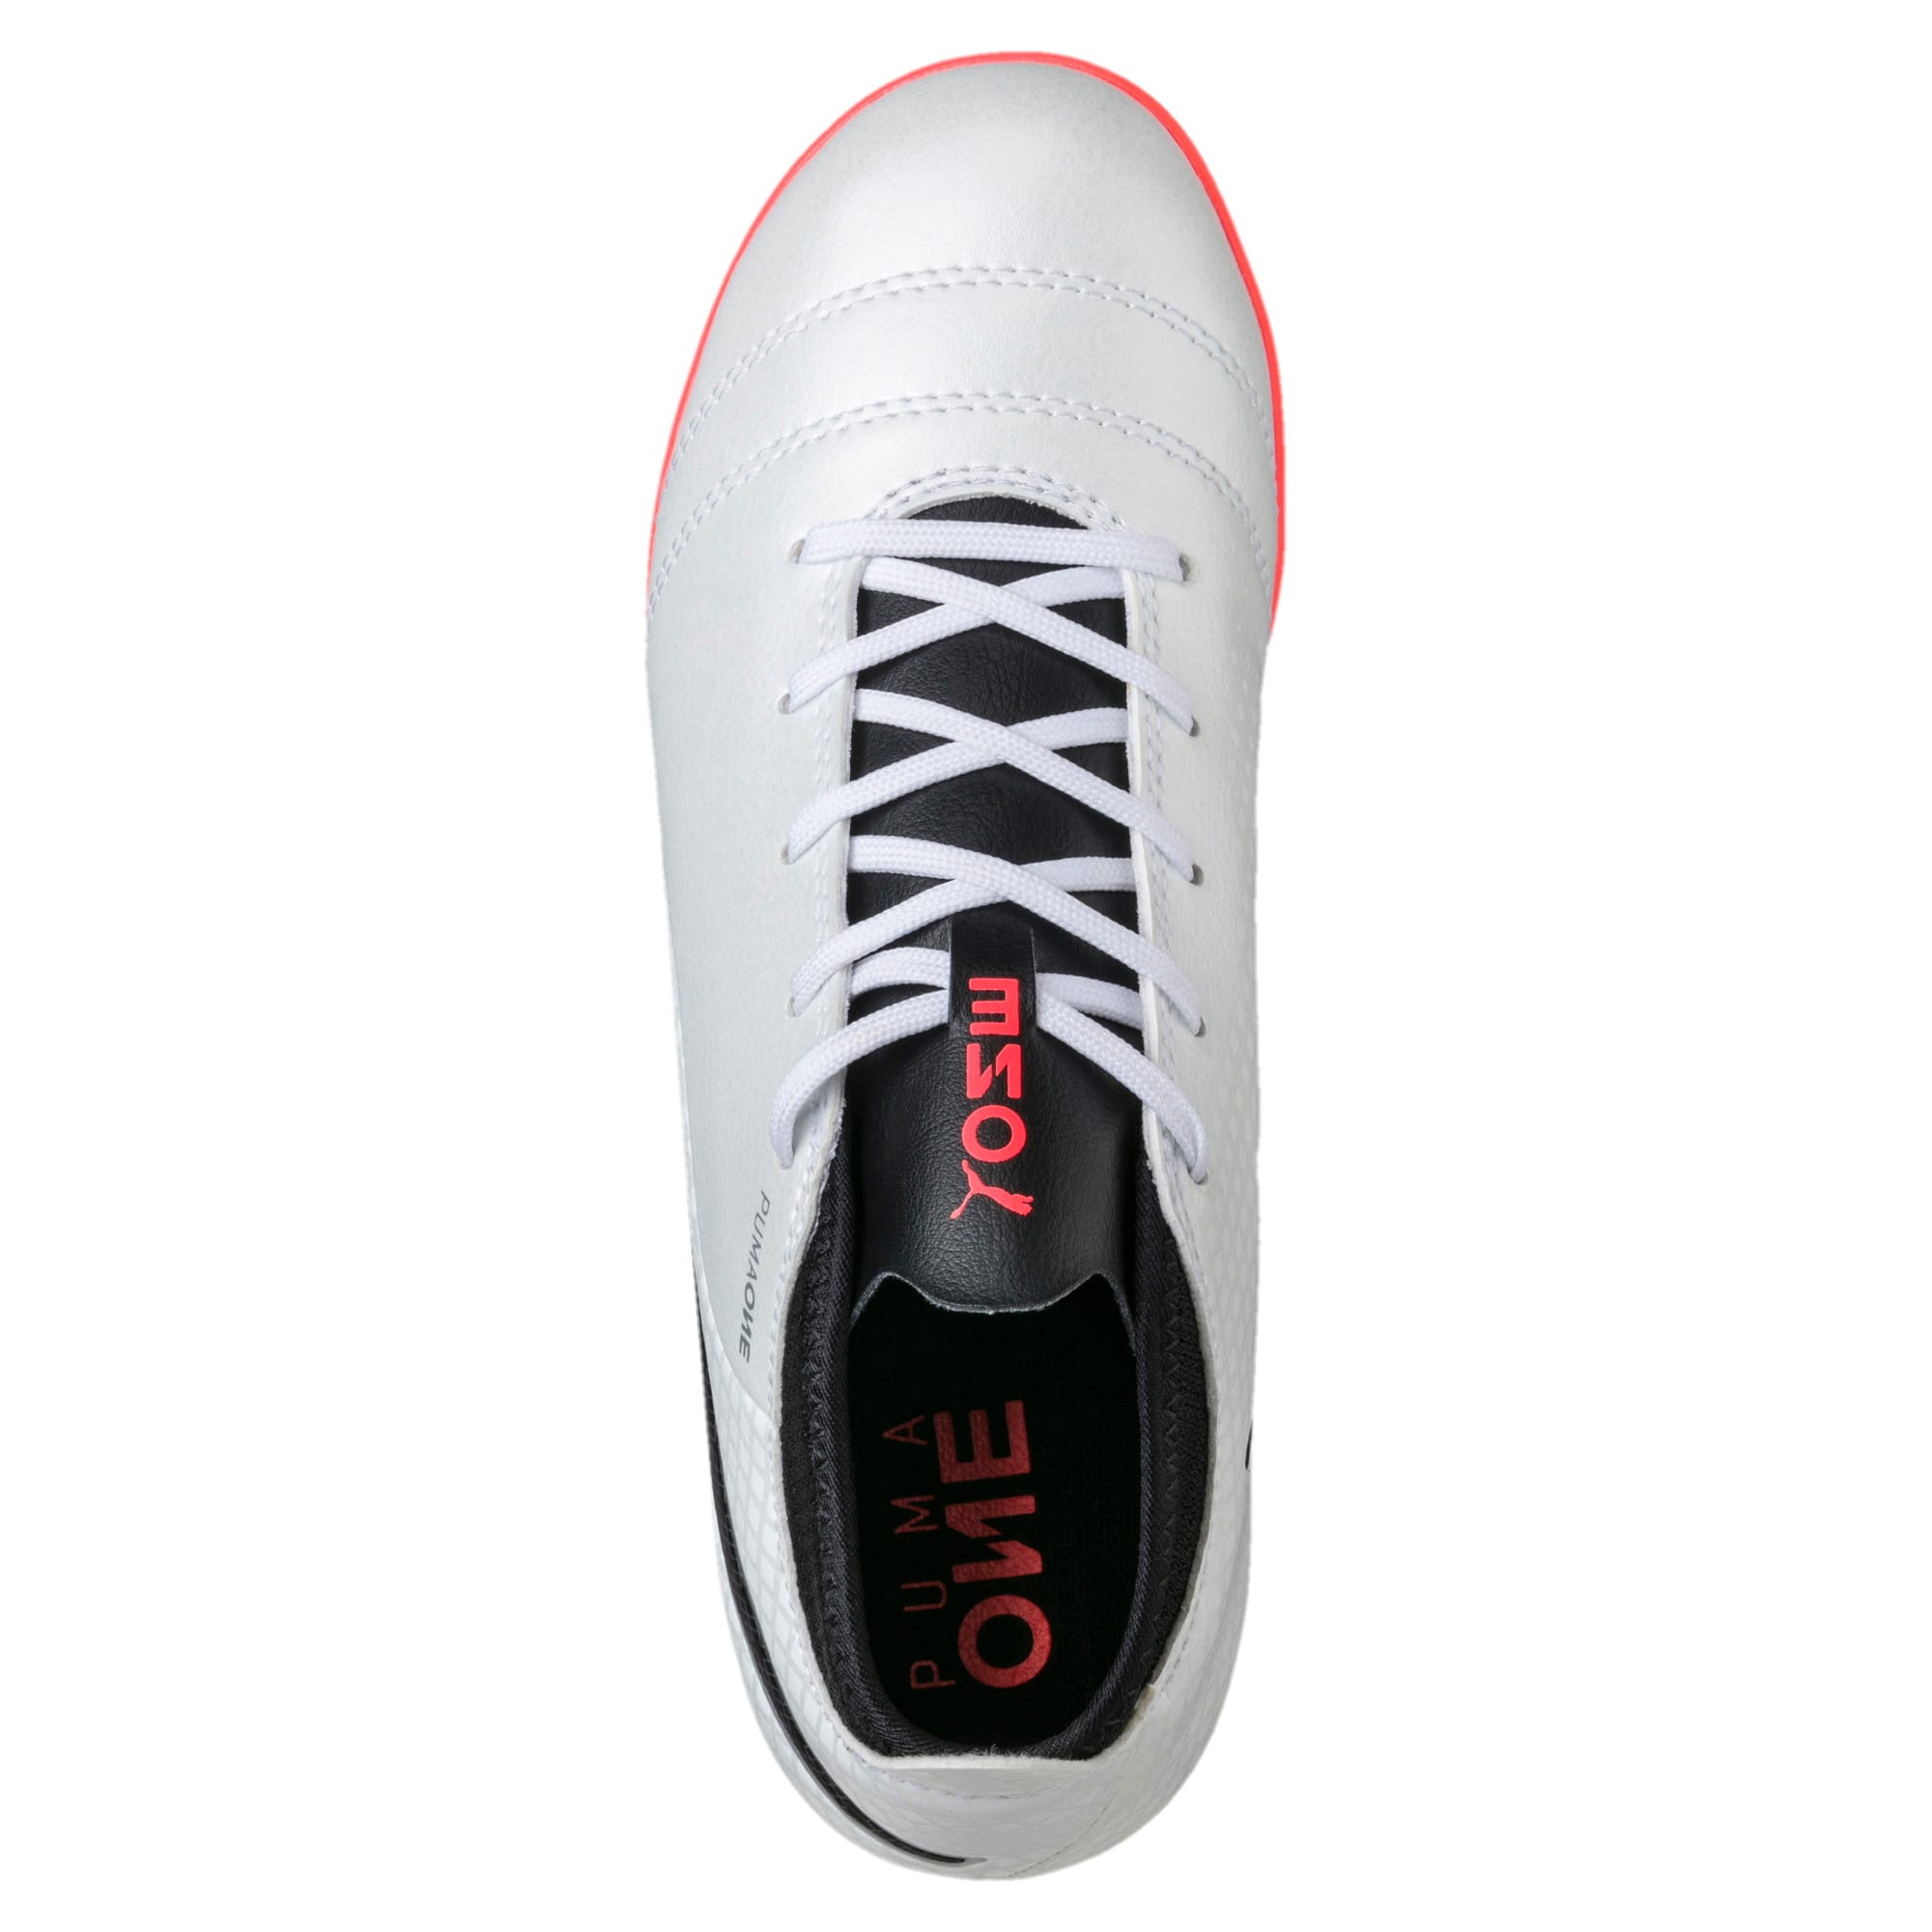 Thumbnail 5 of ONE 17.4 TT Kids' Football Boots, White-Black-Coral, medium-IND